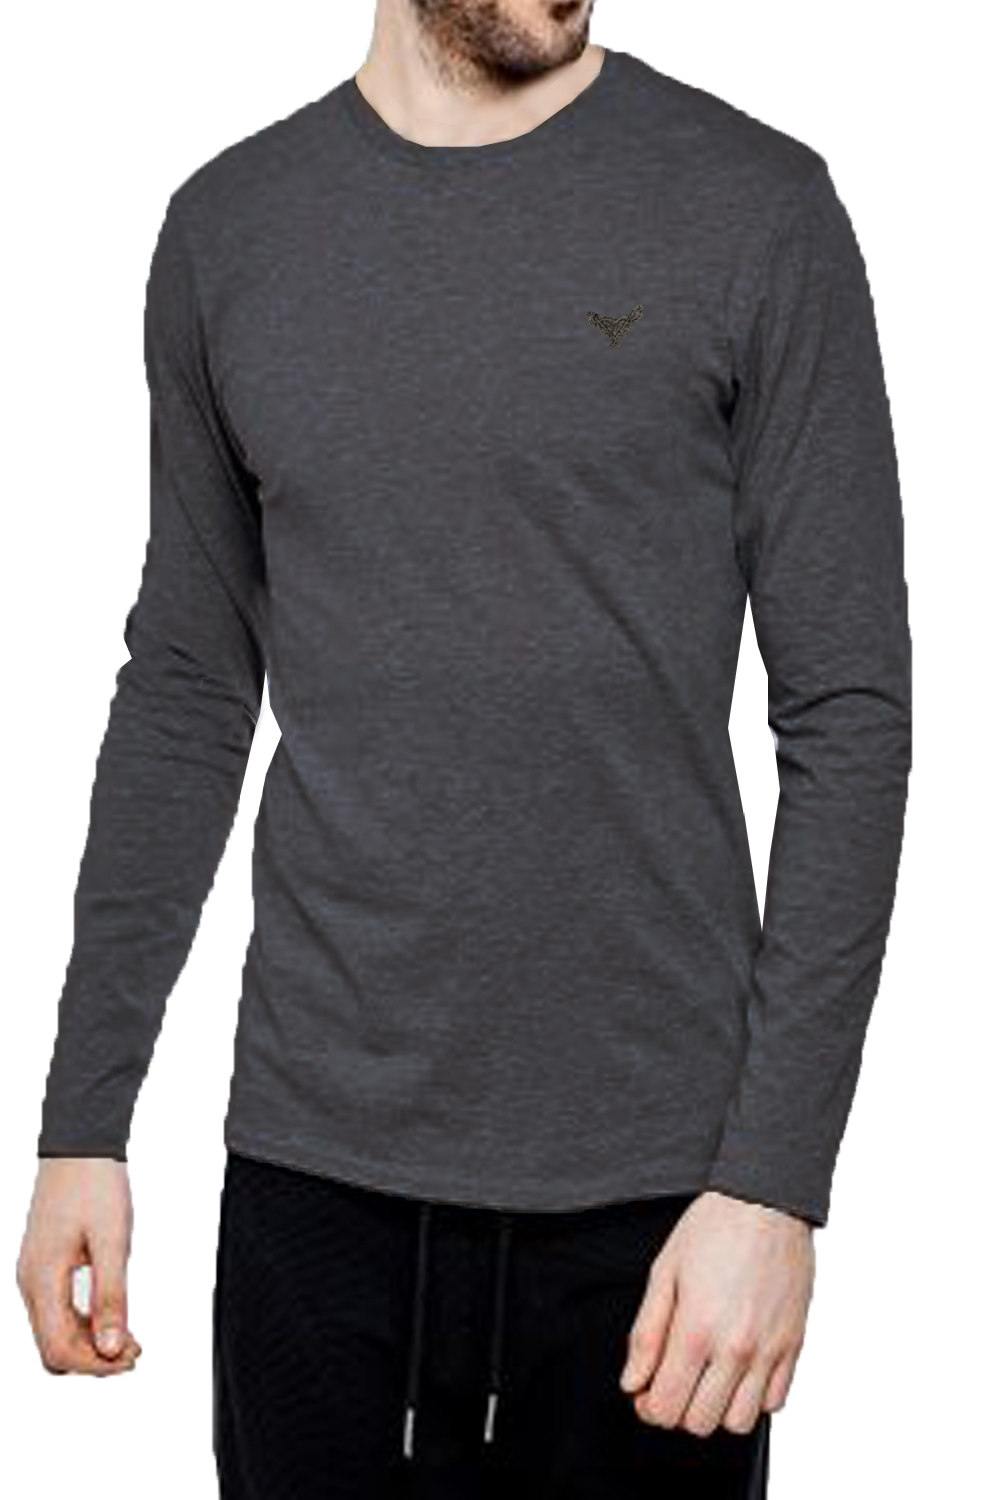 Threadbare-Mens-William-Long-Sleeve-T-Shirt-Cotton-Stretch-Round-Neck-Winter-Top thumbnail 9